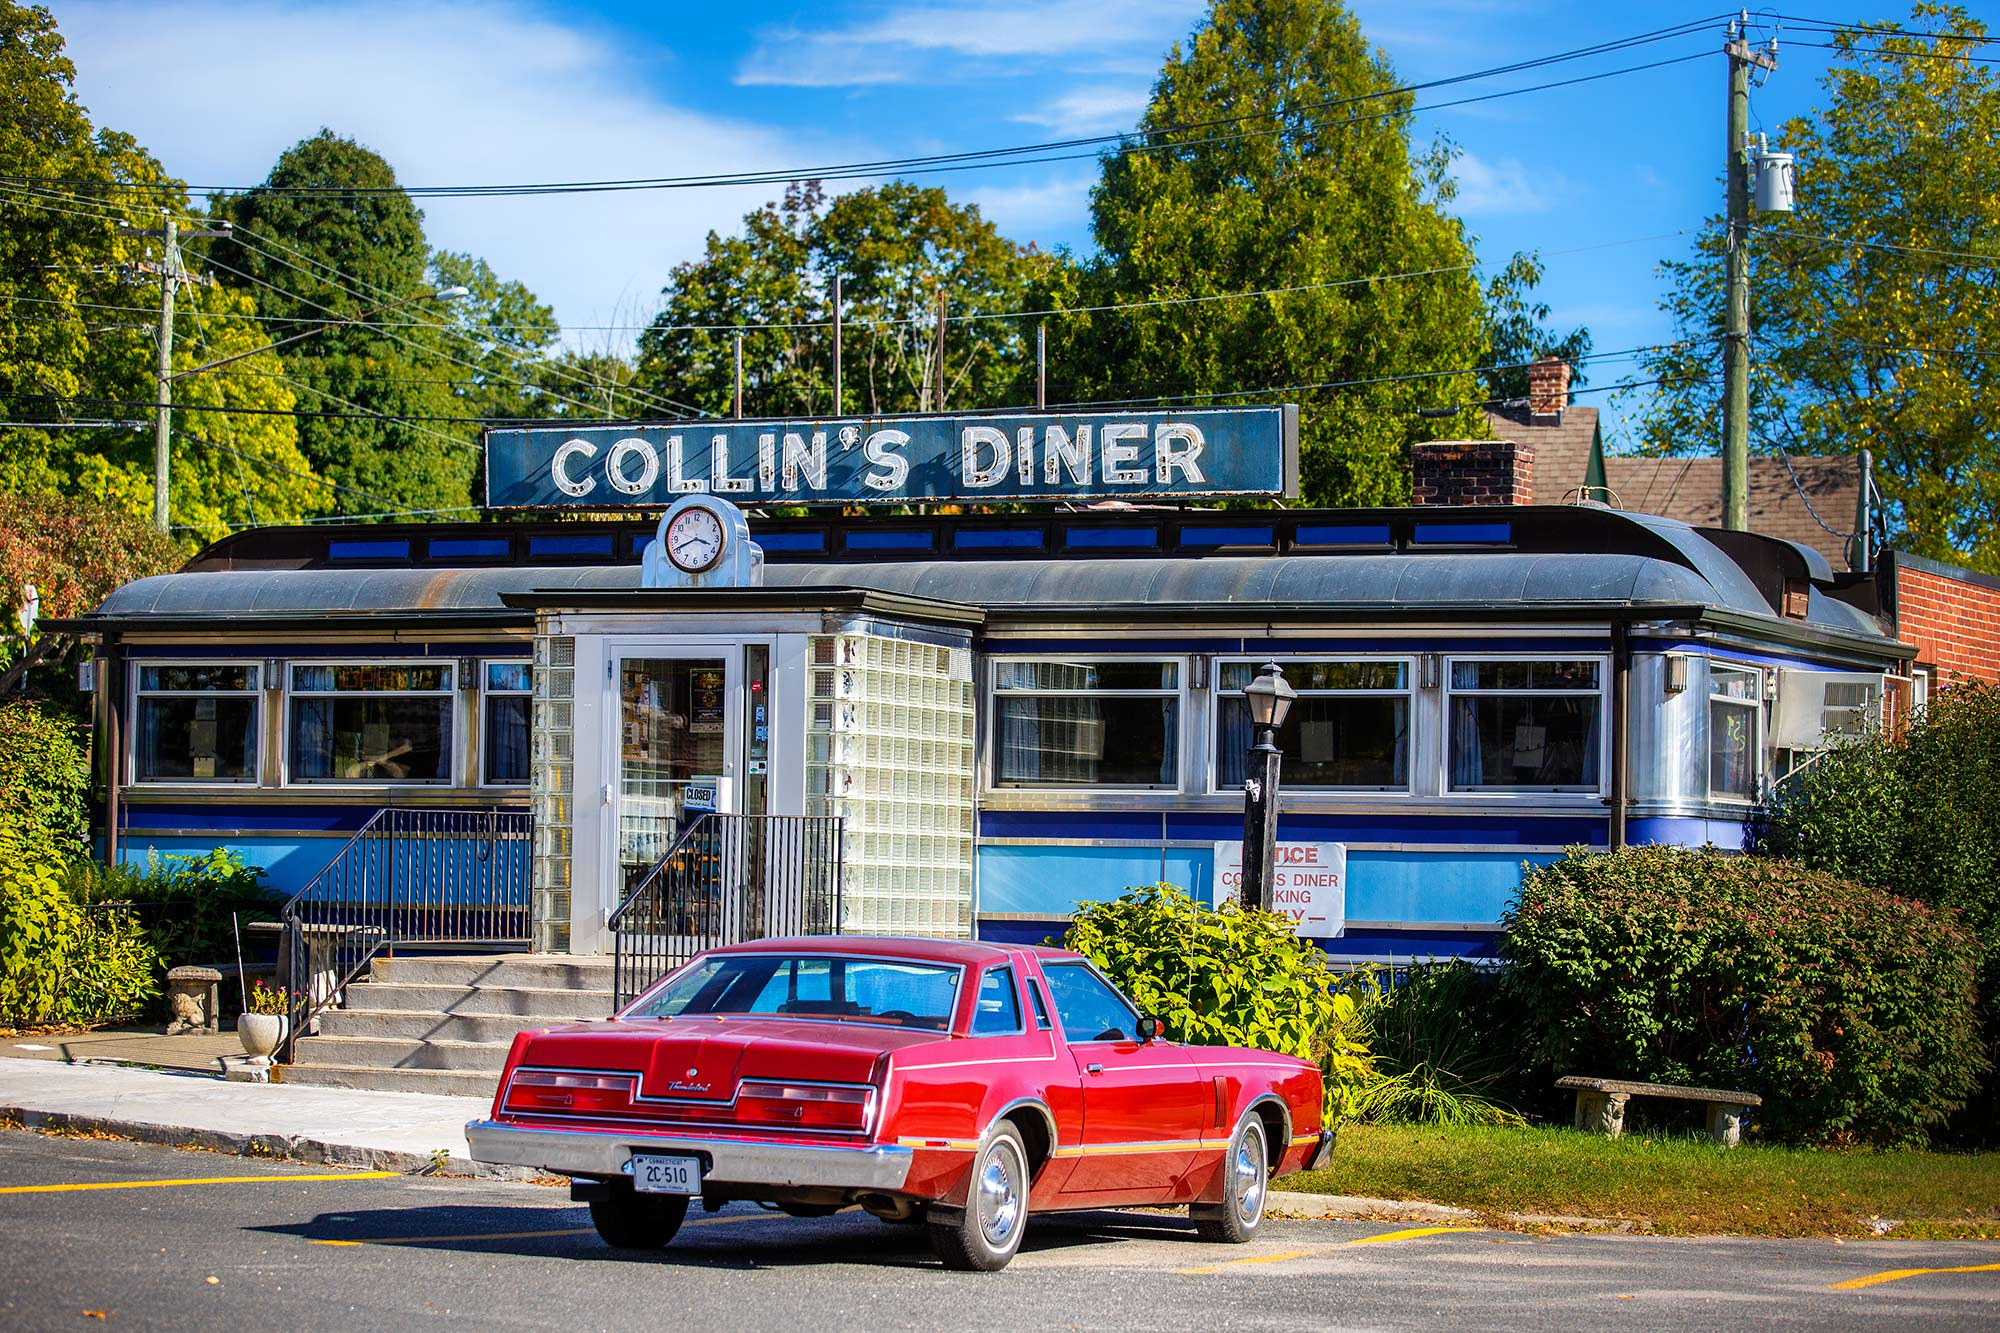 Collin's Diner and a T-Bird, North Canaan, CT- 9/27/15